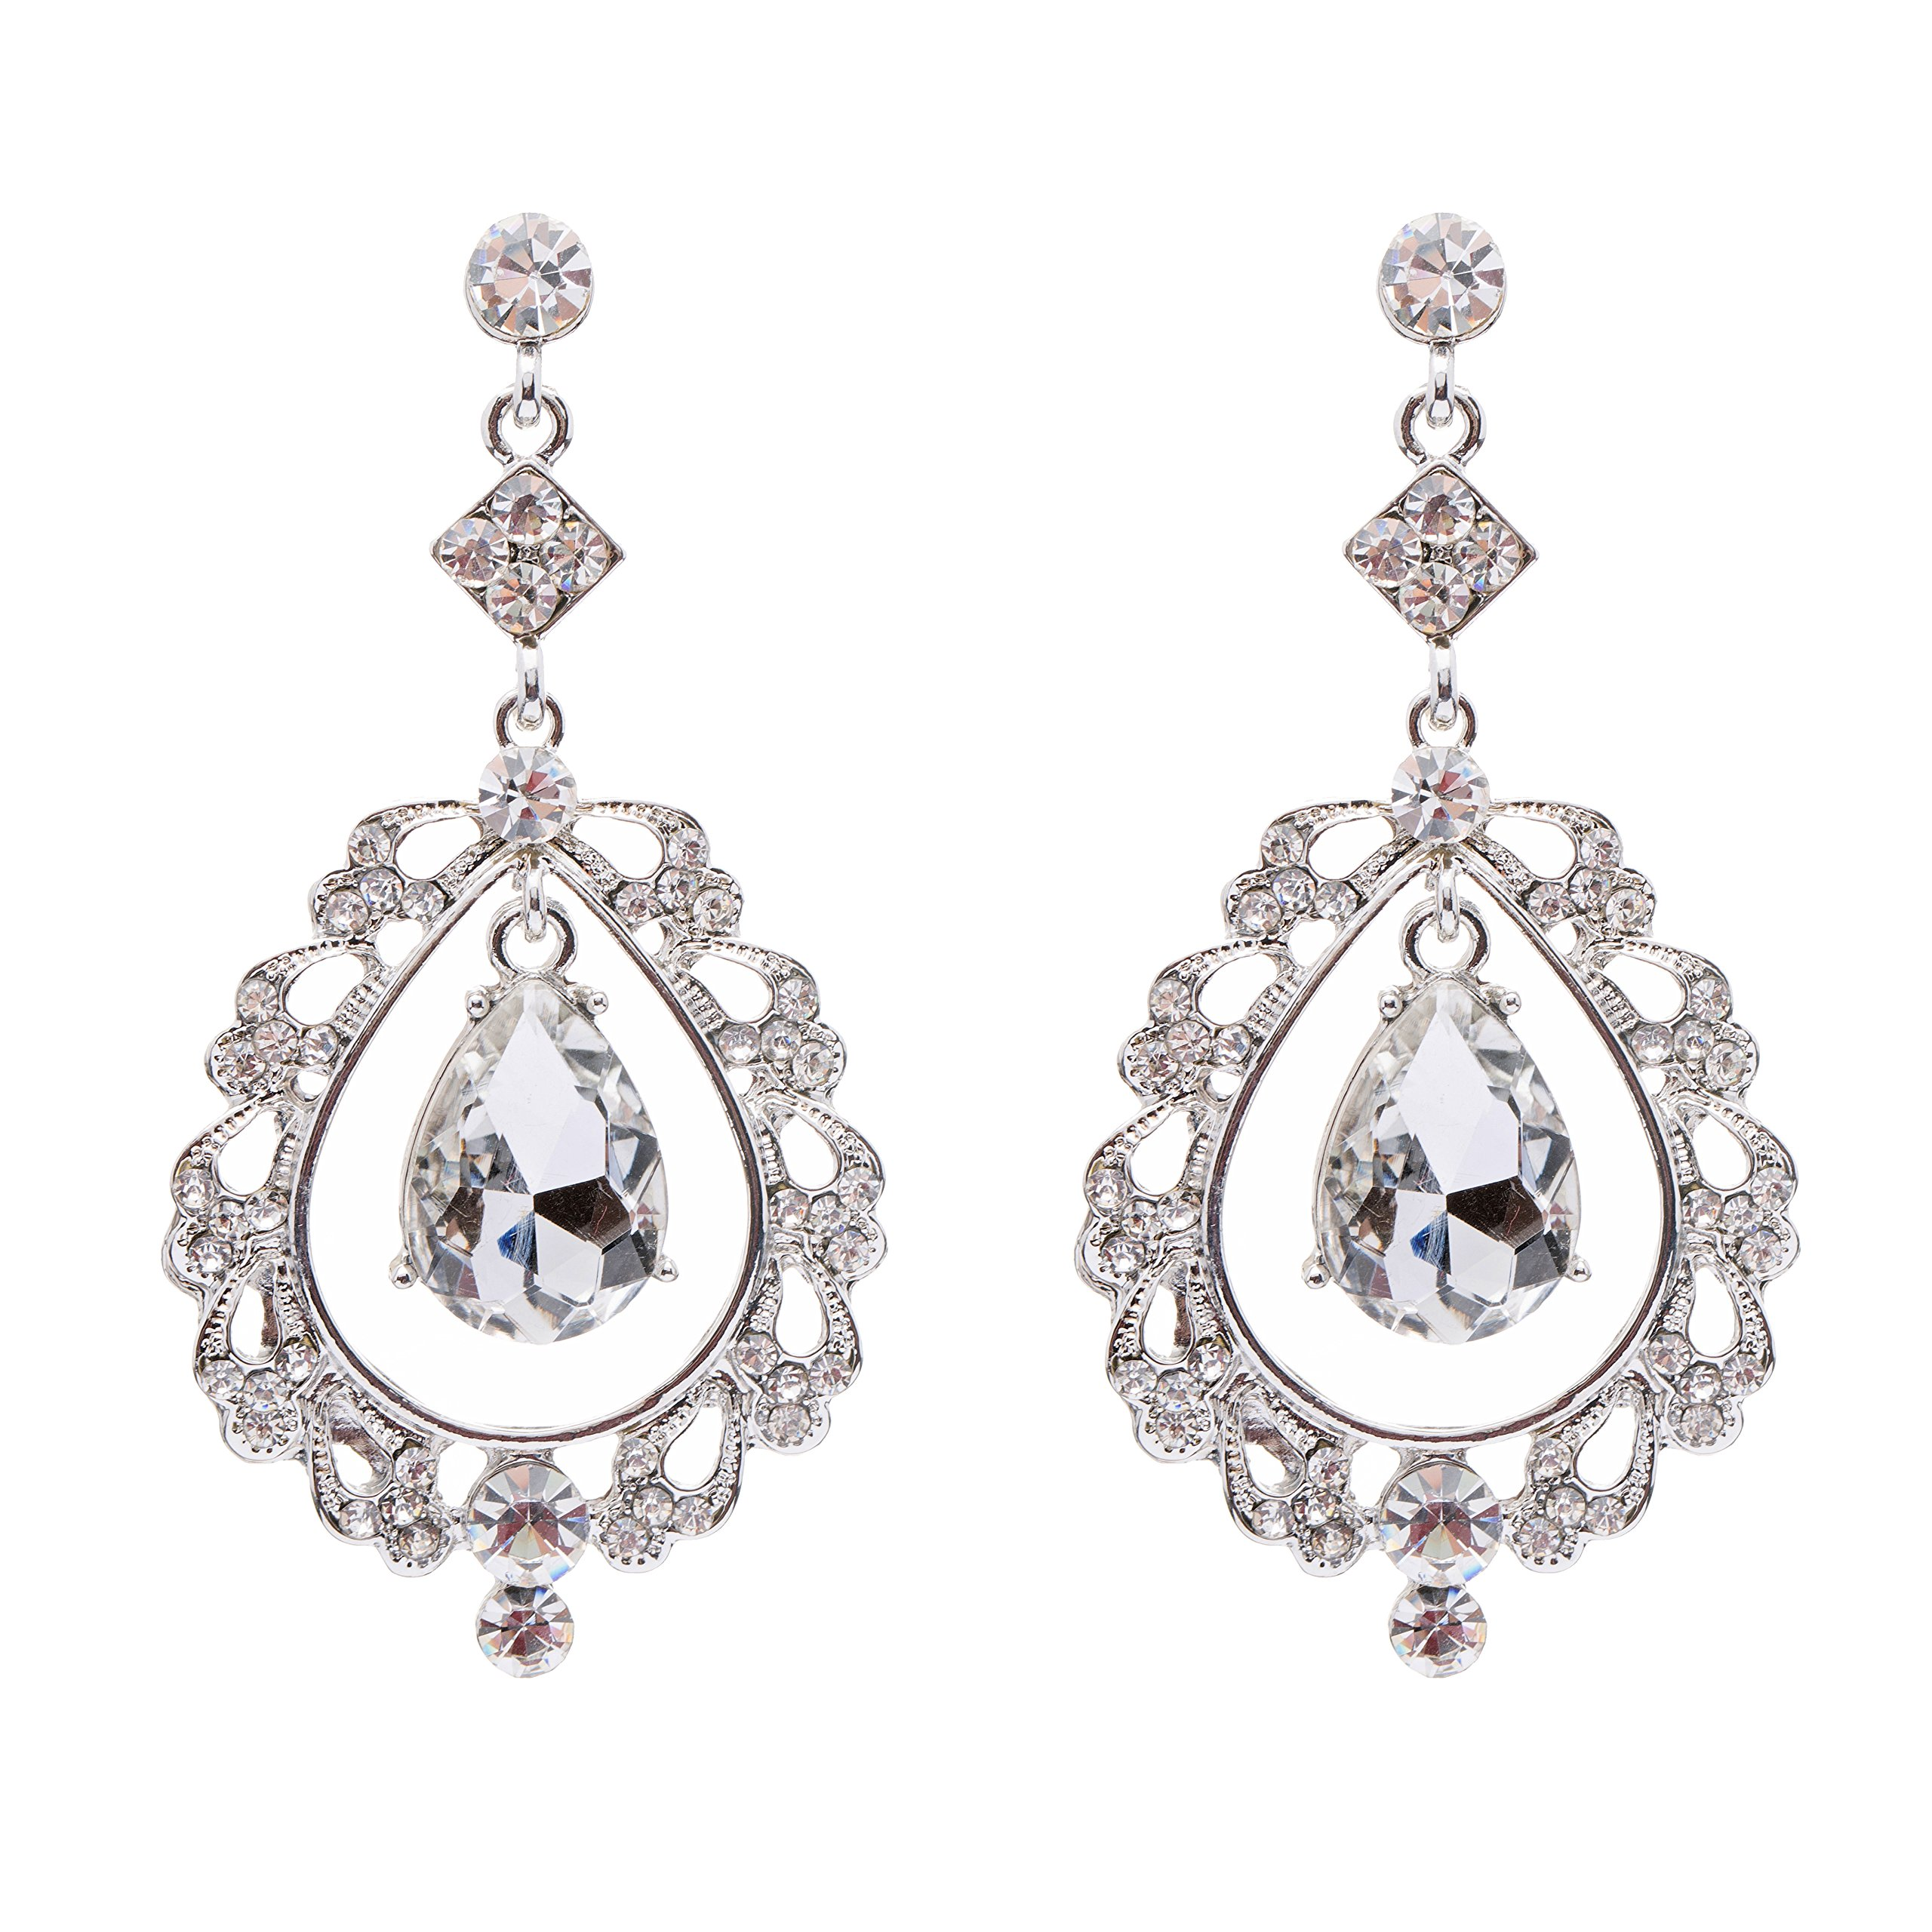 Bridal Wedding Crystal Rhinestone Teardrop Open Dangling Drop Fashion Earrings